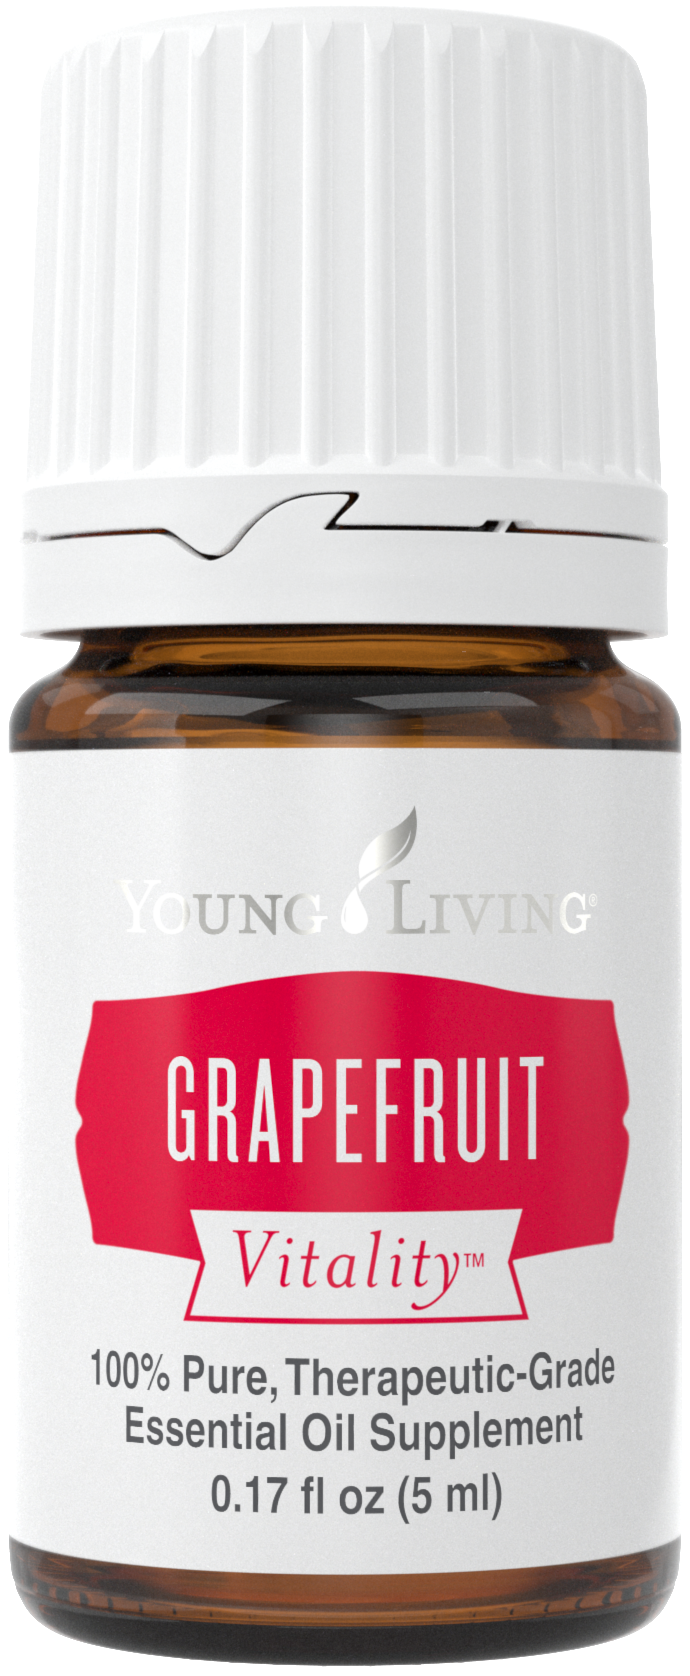 grapefruit_5ml_suplement_silo_2016_23774247944_o.png